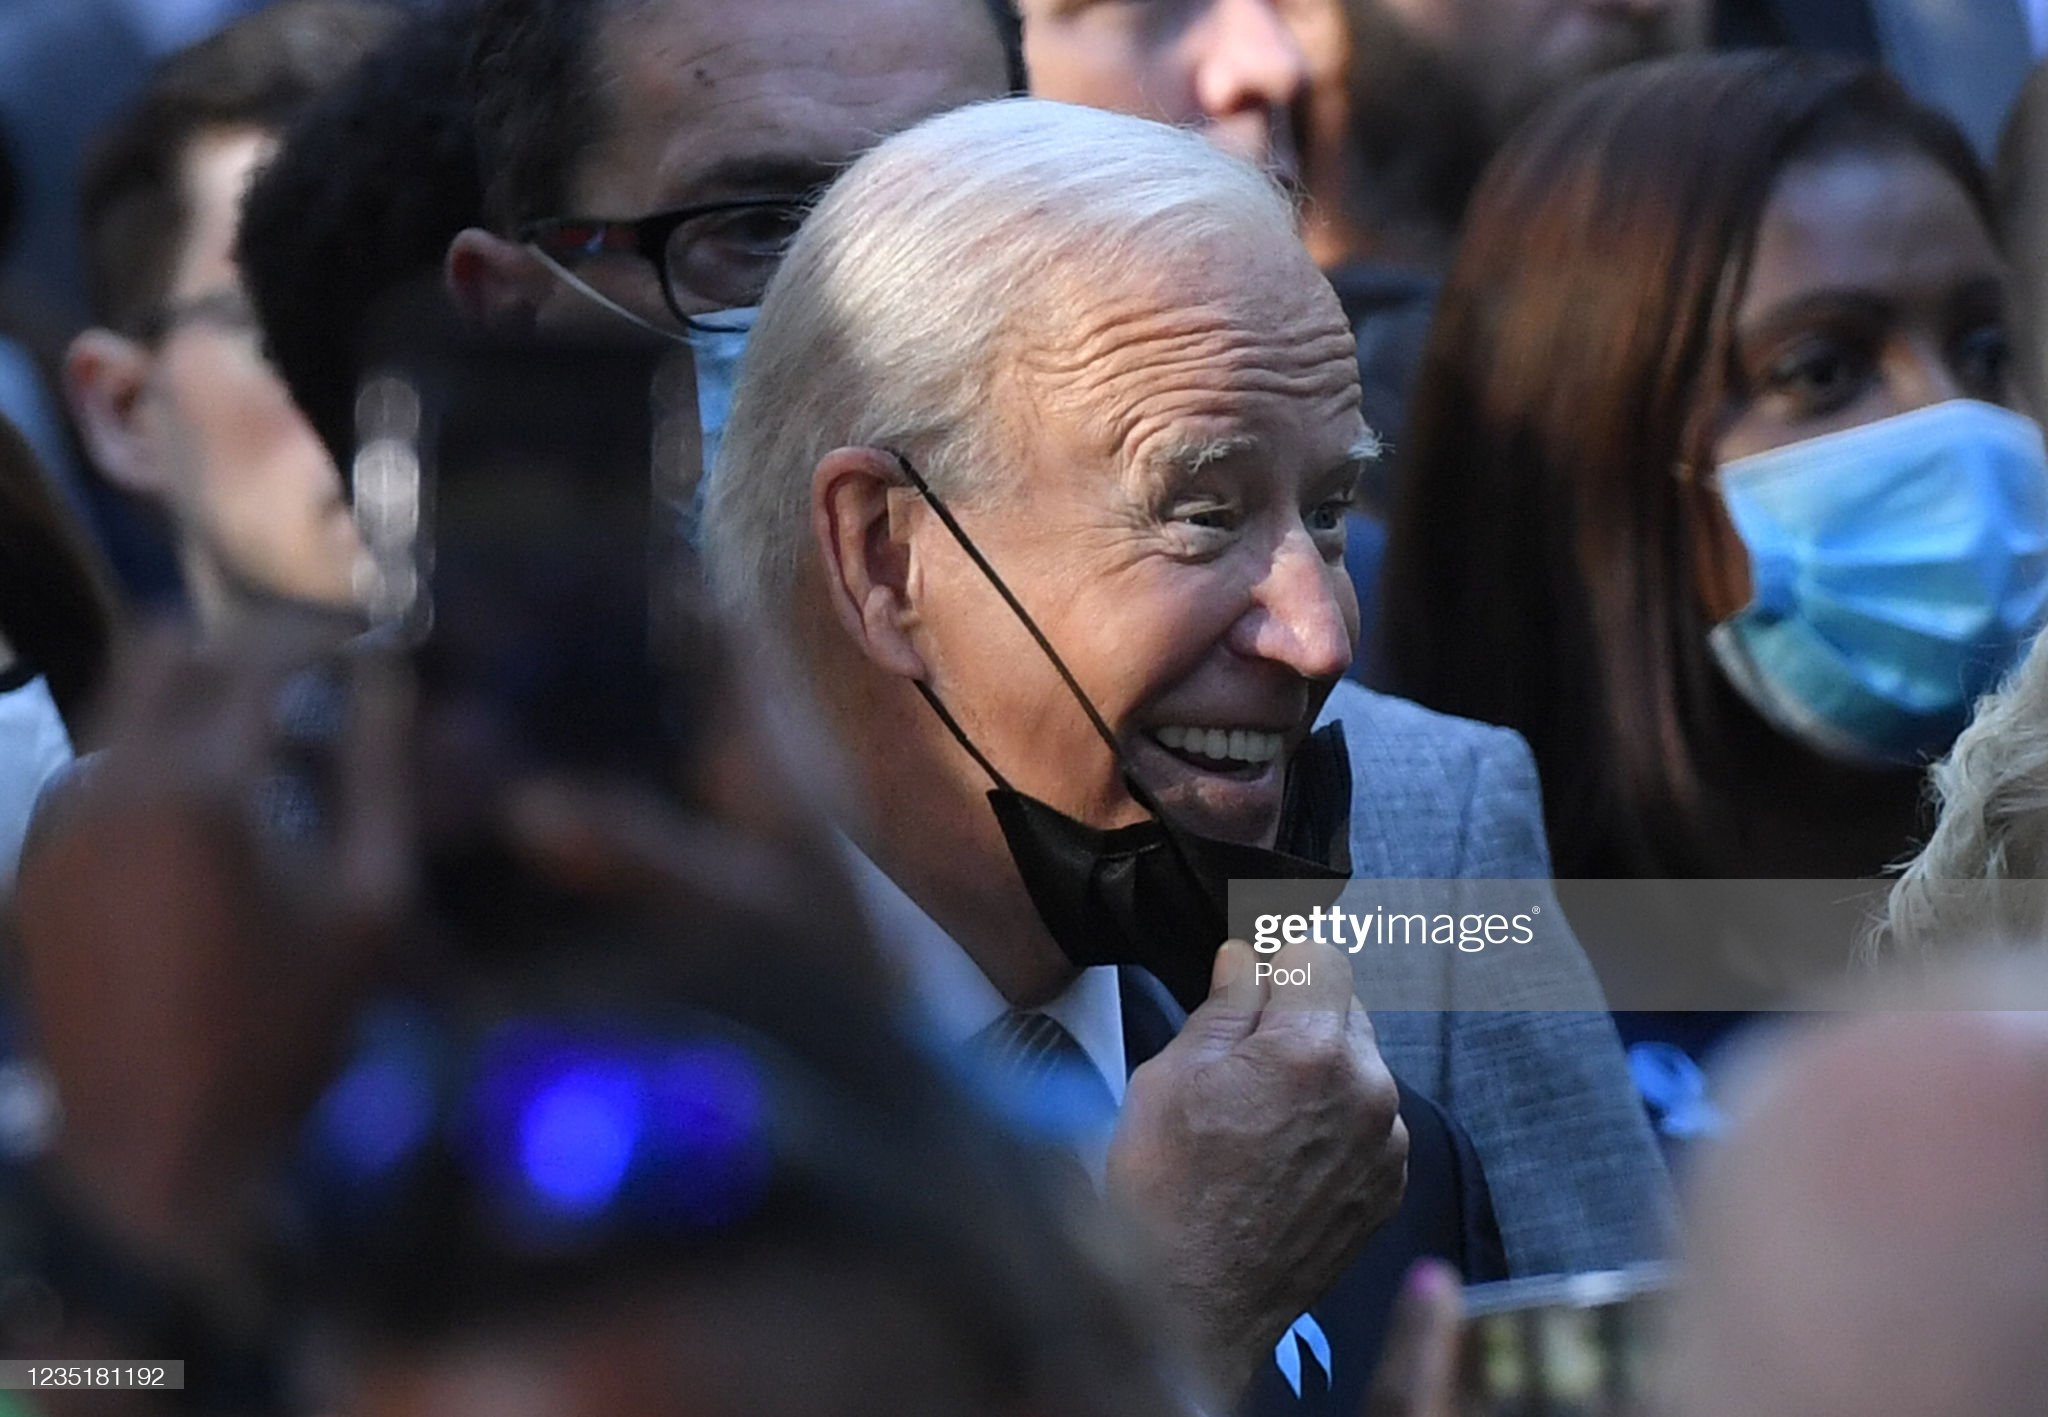 president-joe-biden-attends-the-ceremony-at-the-national-911-memorial-picture-id1235181192